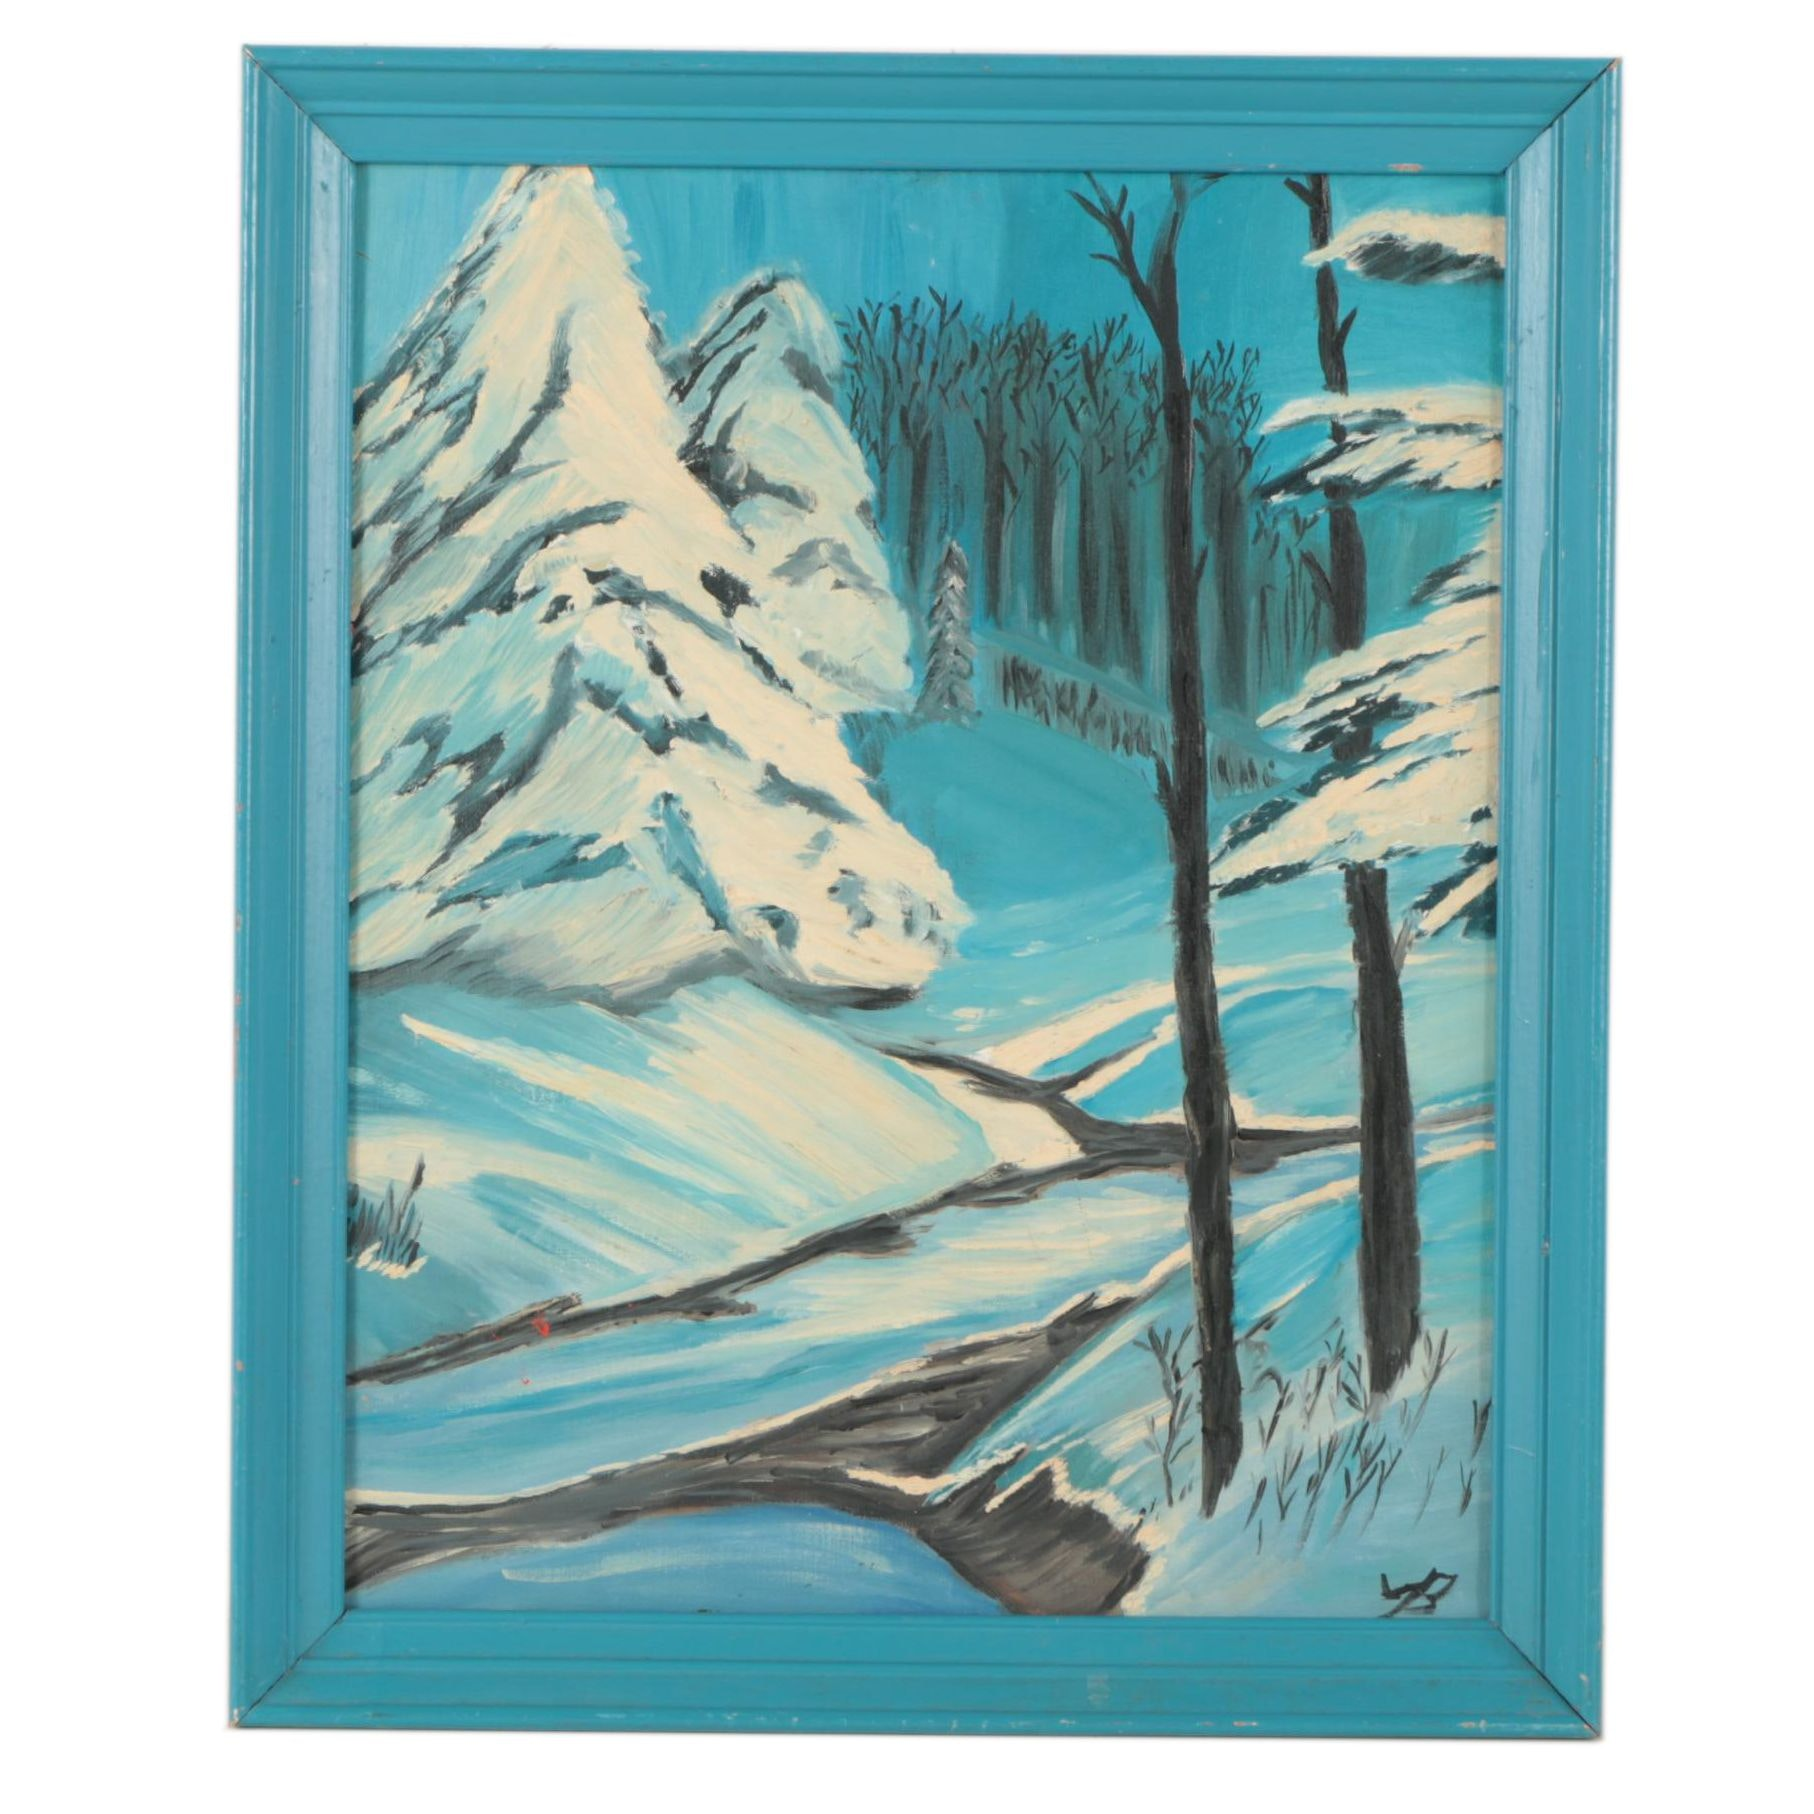 Oil Painting on Canvas Board of Winter Landscape